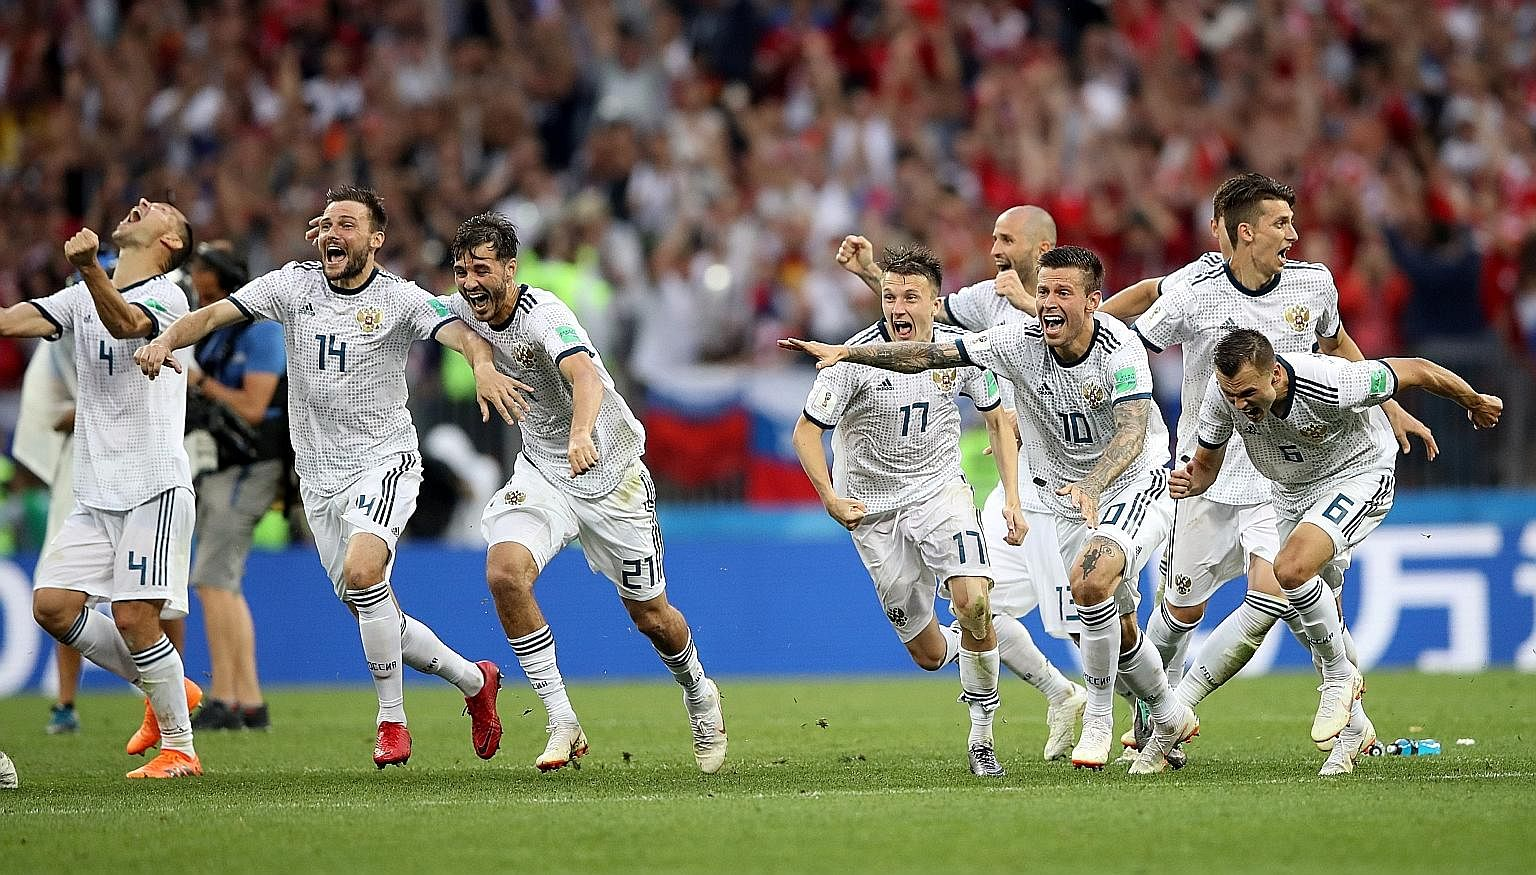 Russia celebrated one of their most famous wins at the World Cup in Moscow yesterday when they defeated 2010 champions Spain 4-3 in a penalty shoot-out to reach the quarter-finals. The last-16 match had ended 1-1 on full-time. Goalkeeper Igor Akinfee